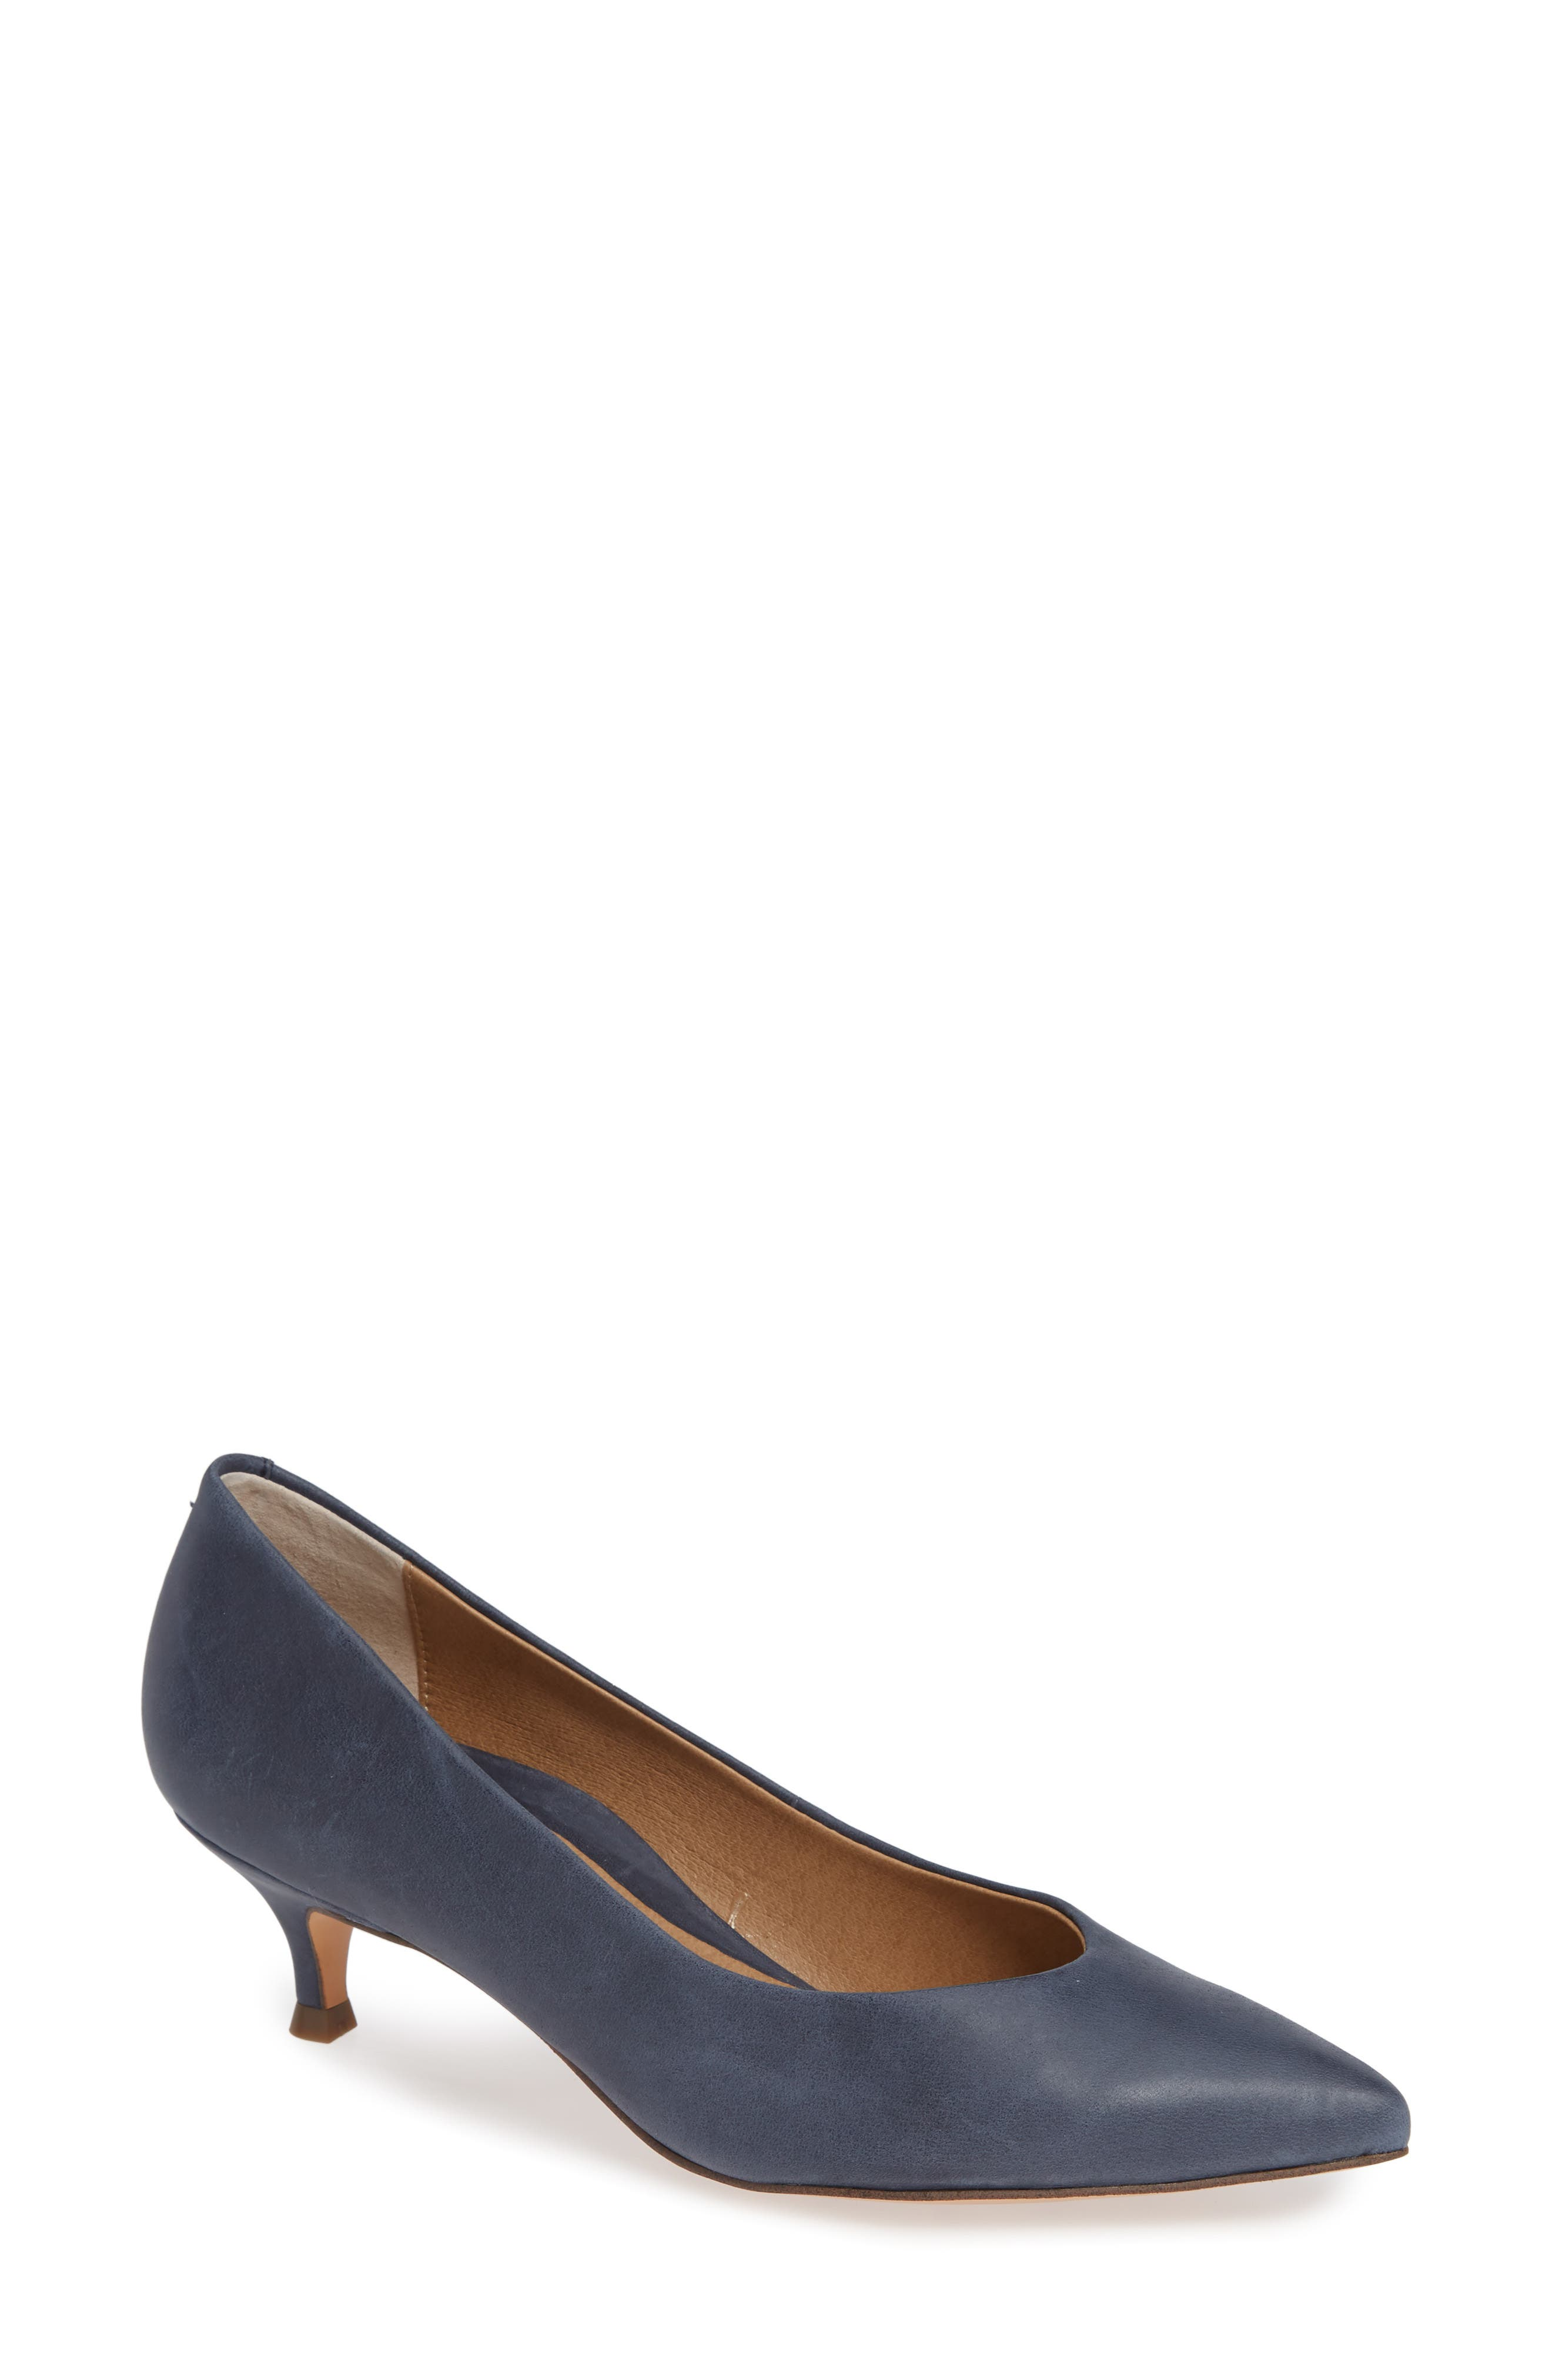 VIONIC Josie Kitten Heel Pump, Main, color, NAVY LEATHER